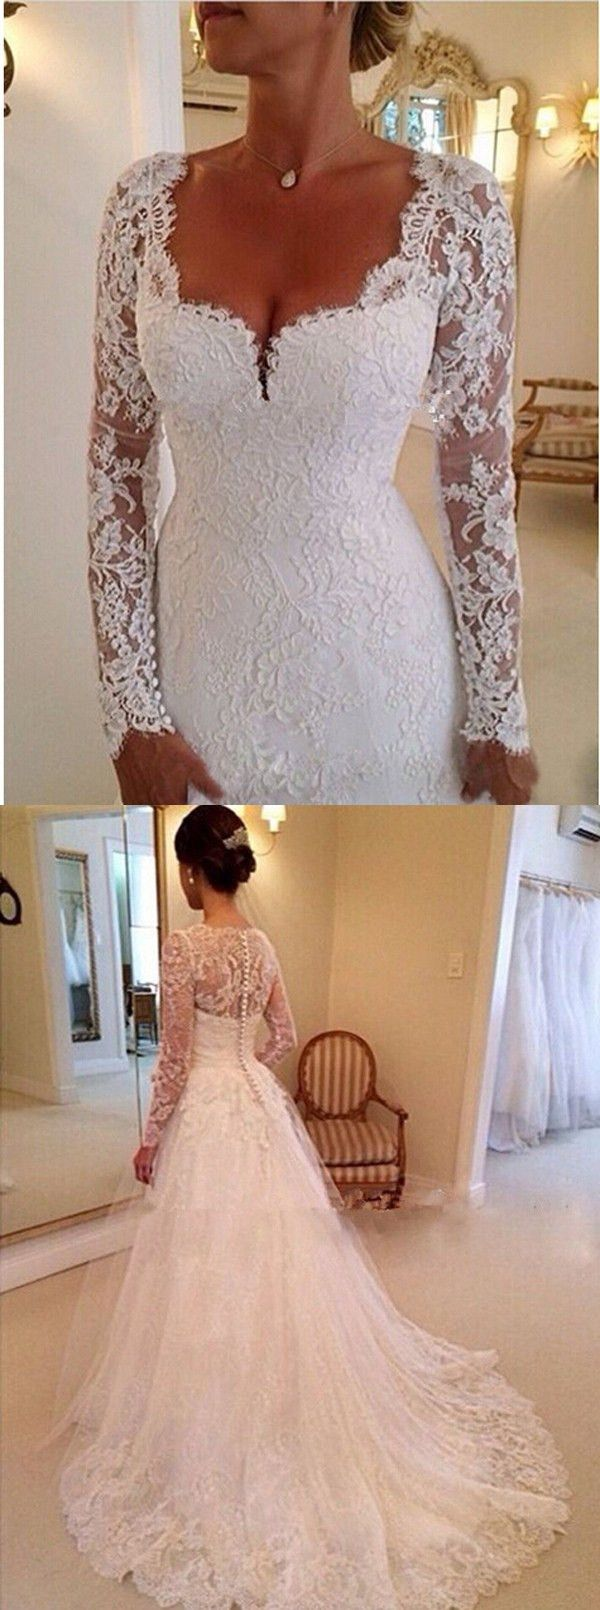 25 best ideas about wedding dress display on pinterest for Best wedding dresses with sleeves